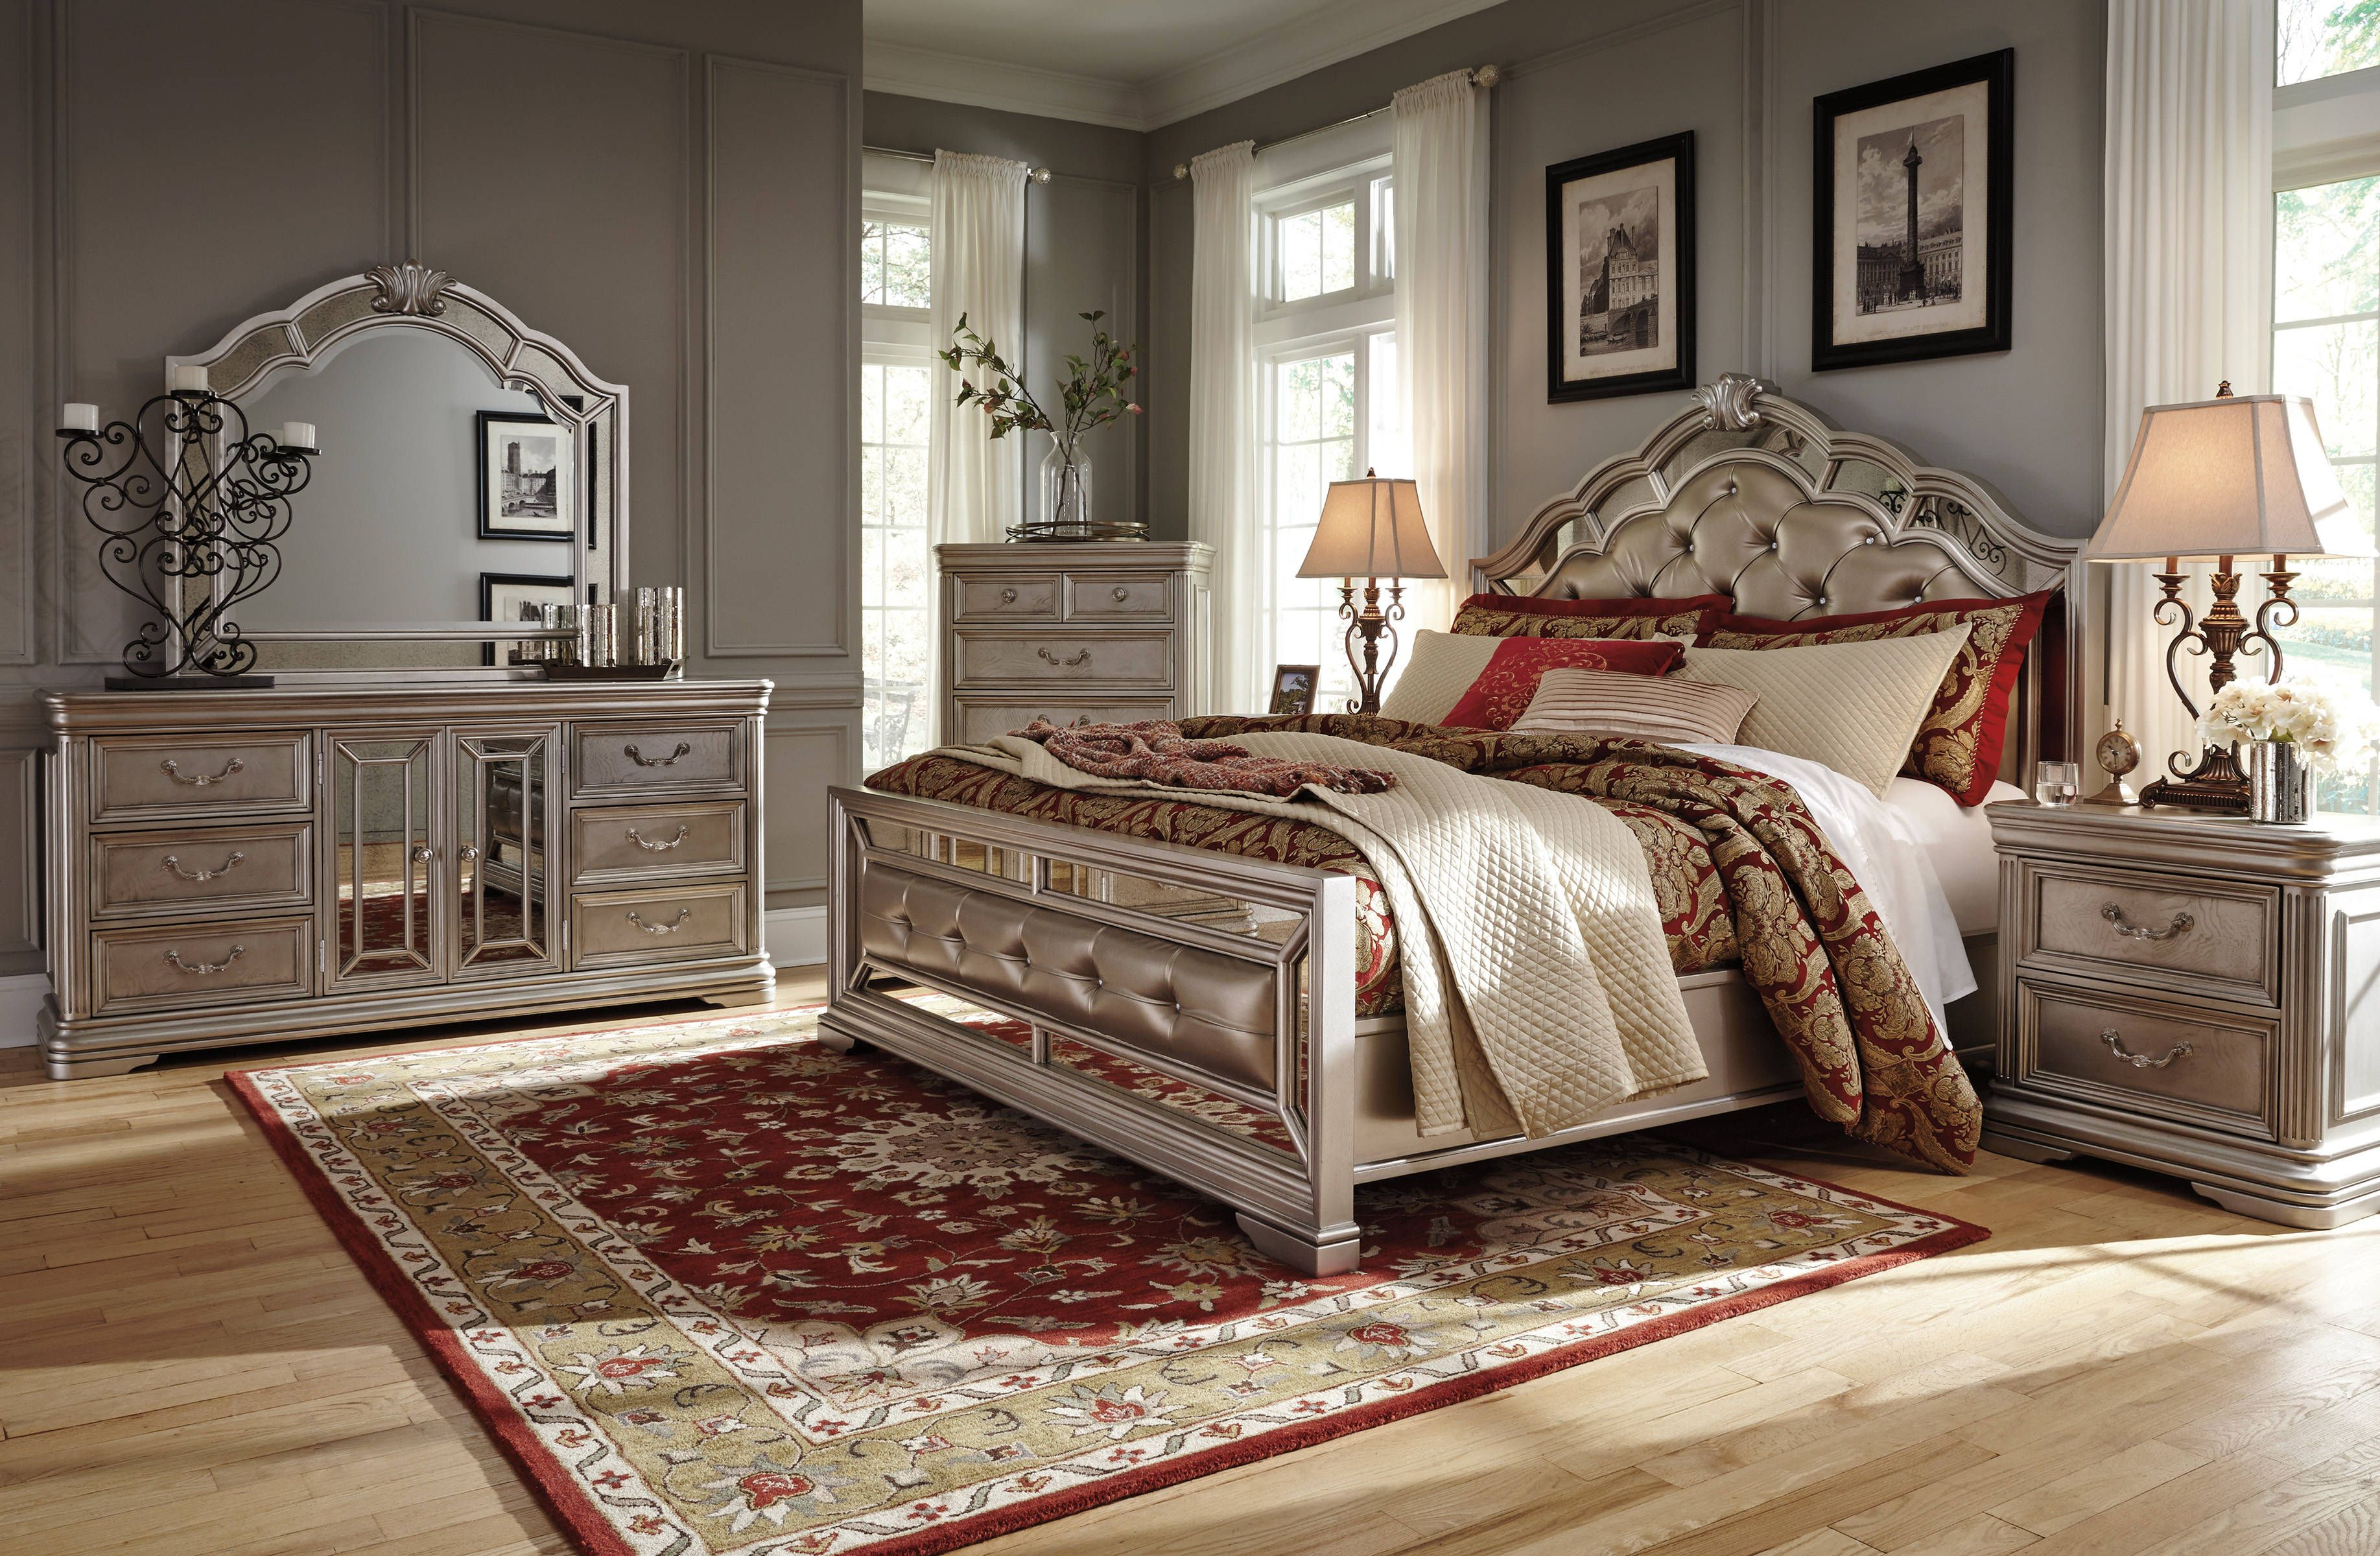 Birlanny Silver Faux Leather Solid Hardwood Master Bedroom